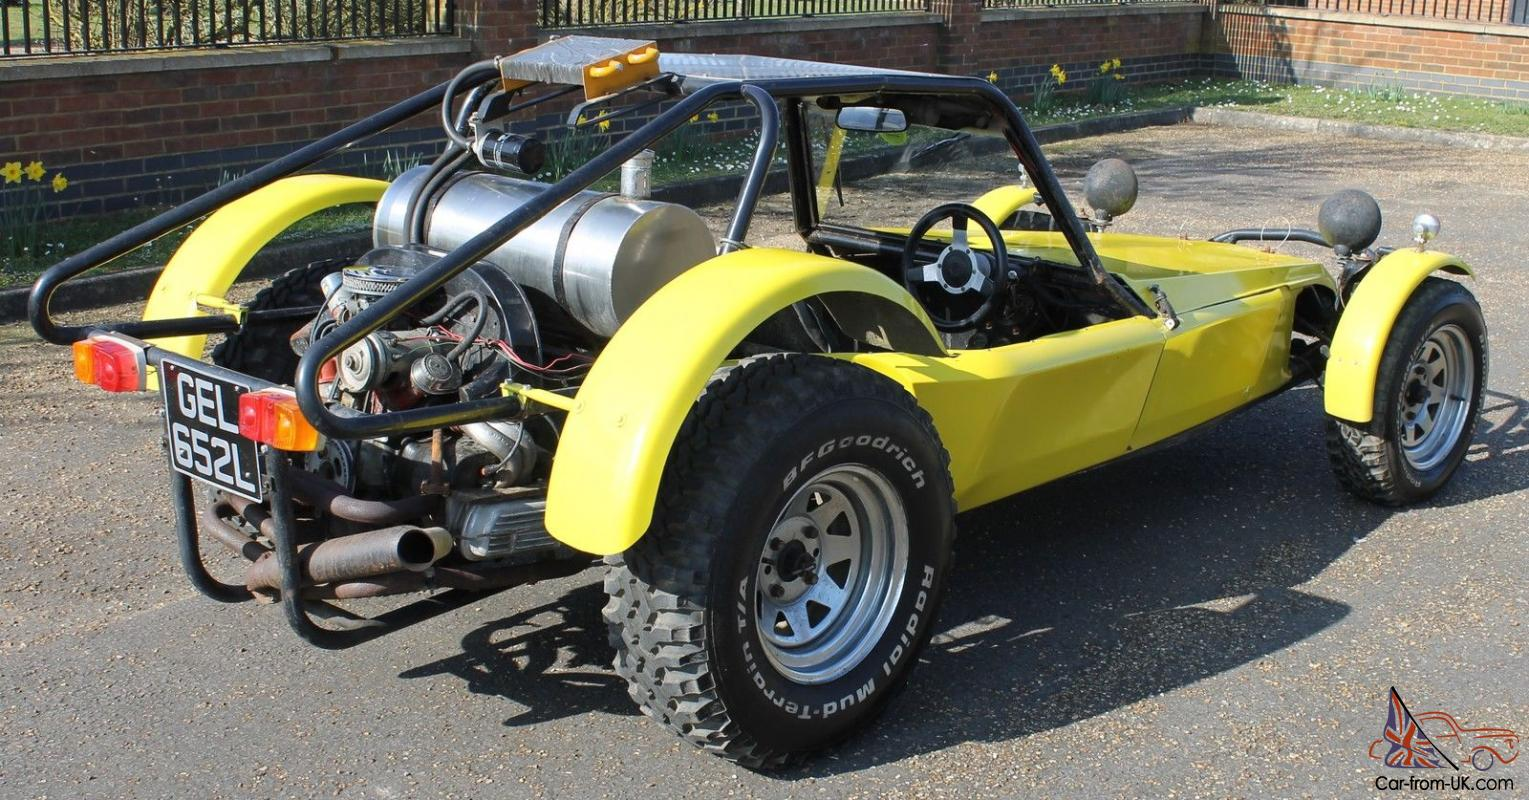 KINGFISHER KUSTOMS SAND RAIL - LIKE UVA FUGITIVE - BUGGY VW BEETLE BASED  KIT CAR